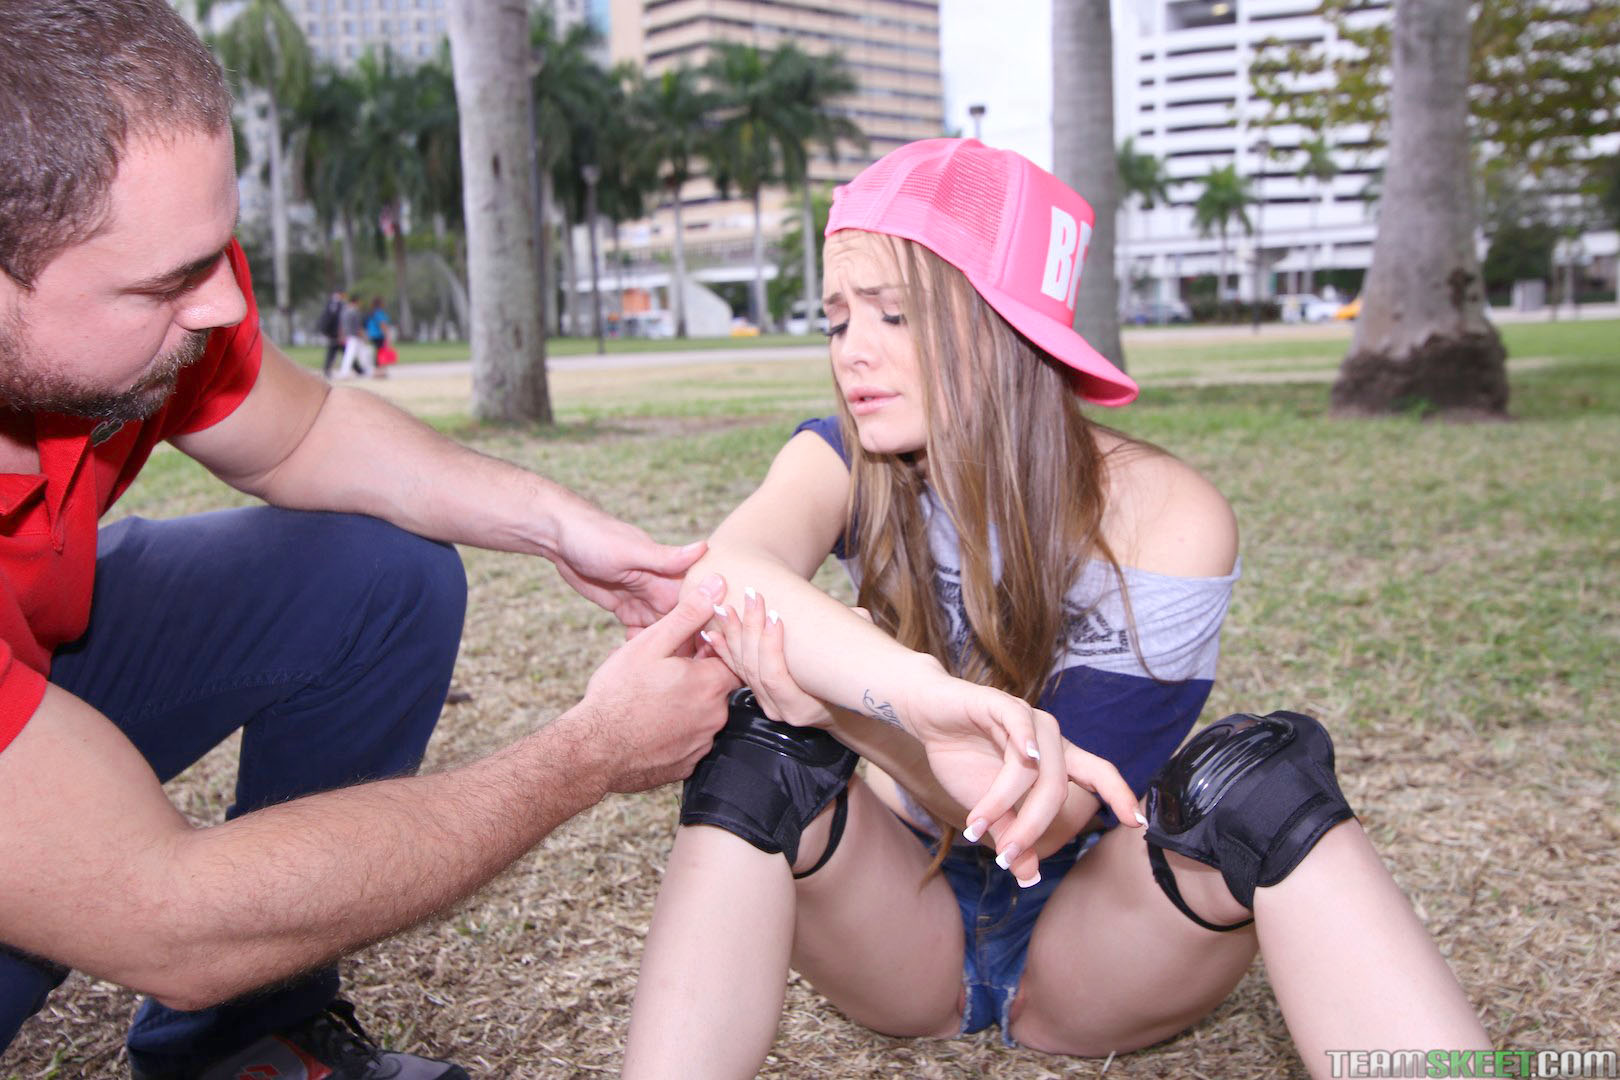 super cute teen babe monica rise falls down in park gets taken home